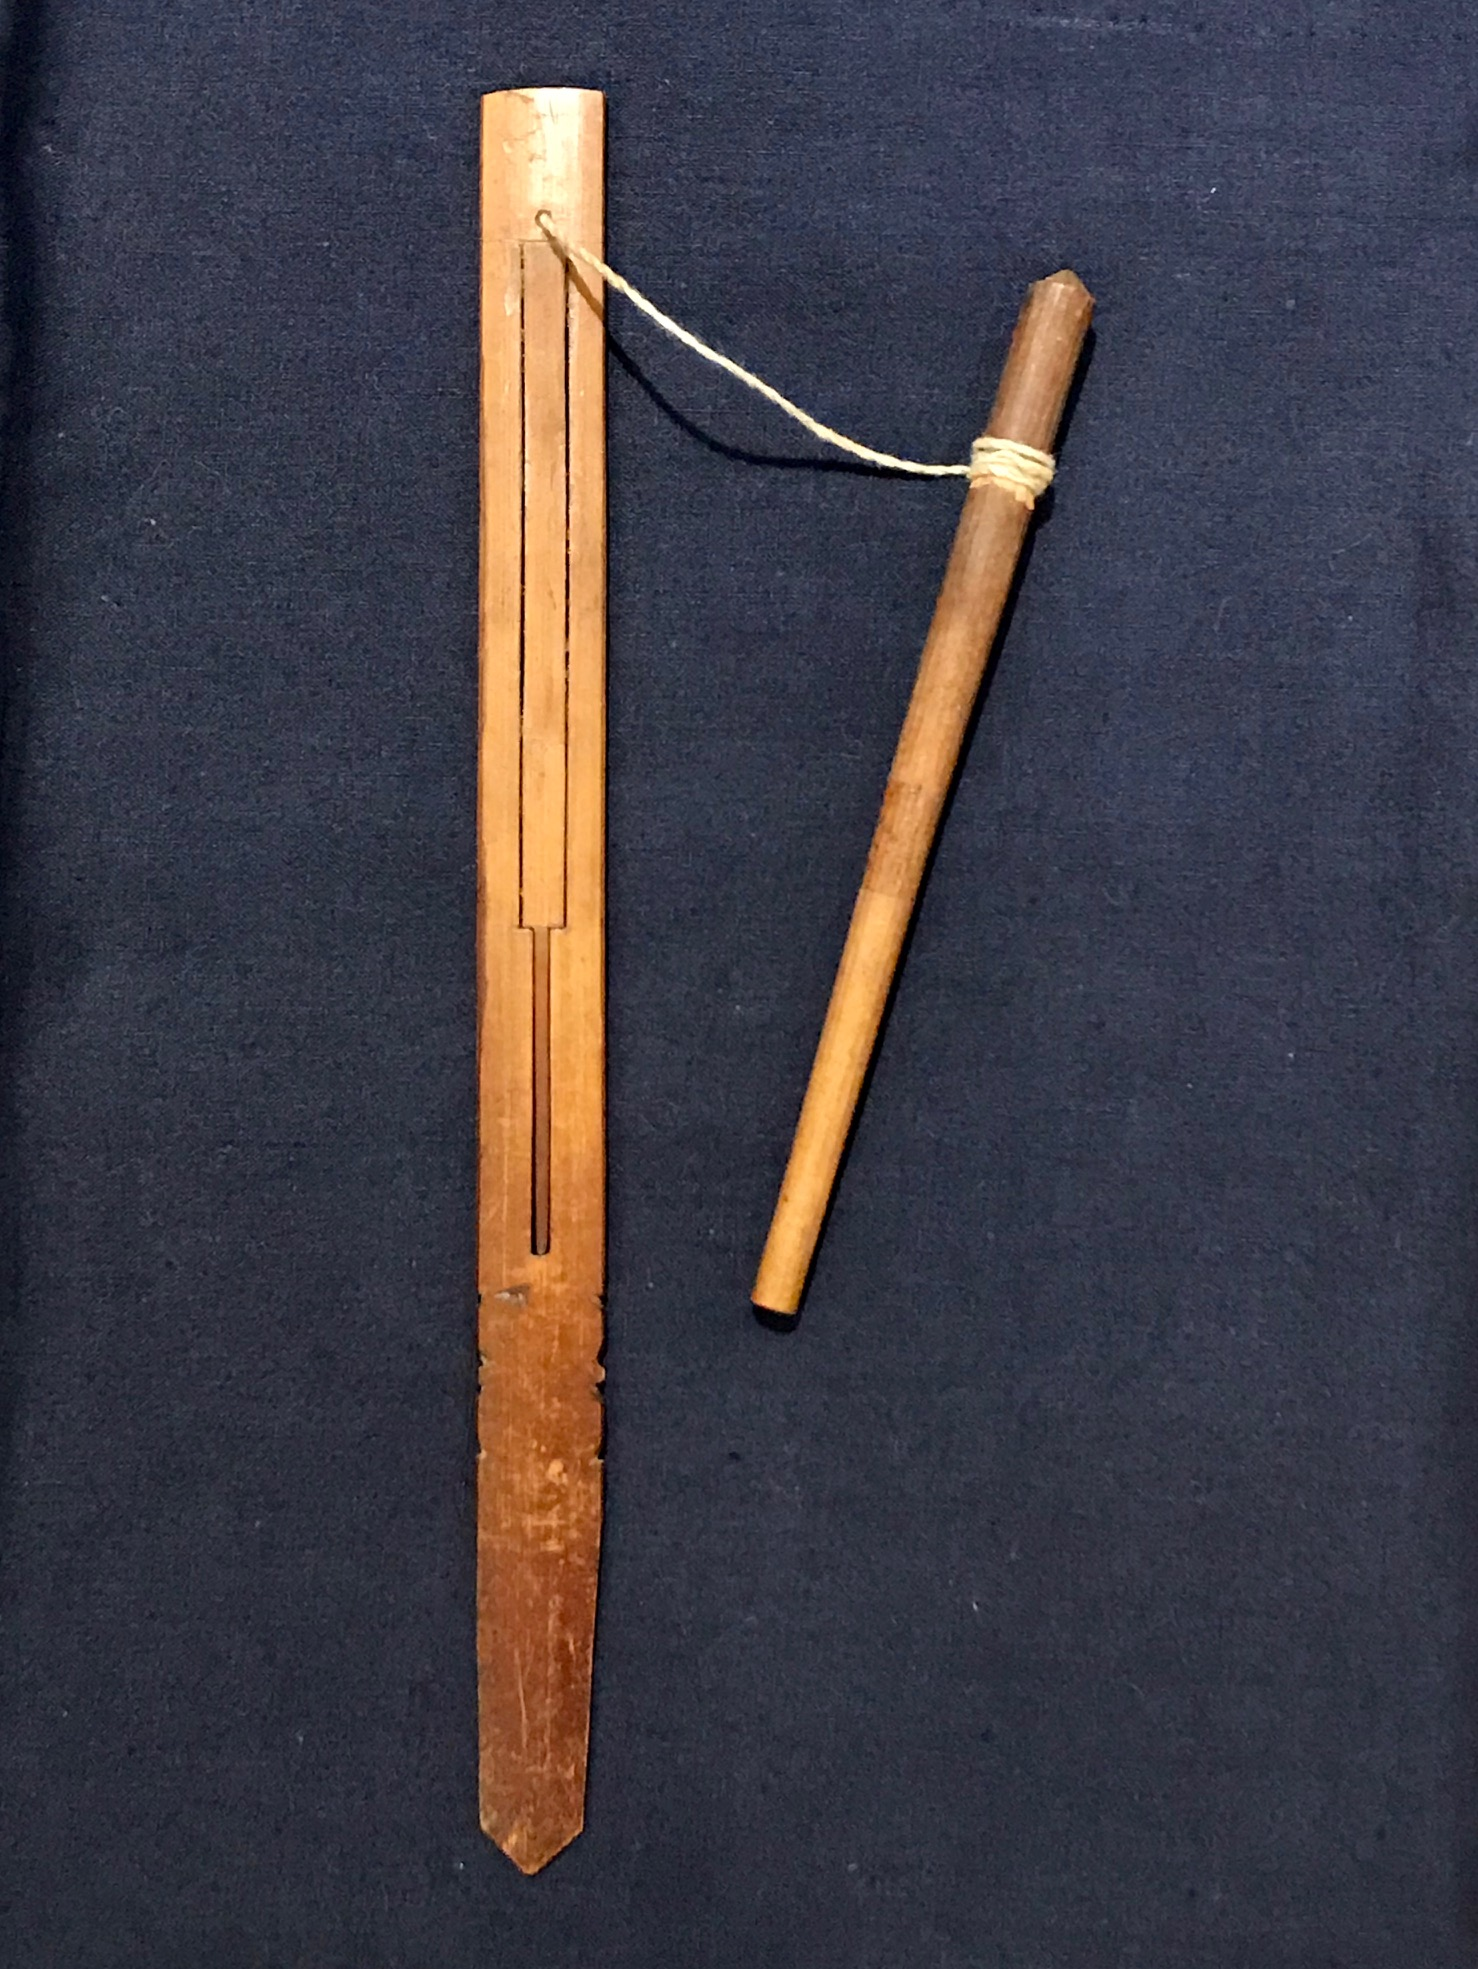 """Tribal Musical Instrument, Mouth Harp with pull stick, Sasak tribe, Lombok Island, Indonesia, Early to mid 20th c, bamboo, string, played by using the mouth as the resonating cavity and pulling the string to vibrate the bamboo. There are many traditional songs written for it. It has been referred to as a 'mind cleaner' Because it uses the mouth to resonate, it clears the brain of unclear thoughts. 7 3/4"""" x 5/8"""" x 1/8"""", pull stick - 4 3/4"""" x 1/4, sold, thedavidalancollection.com , solana beach, ca"""